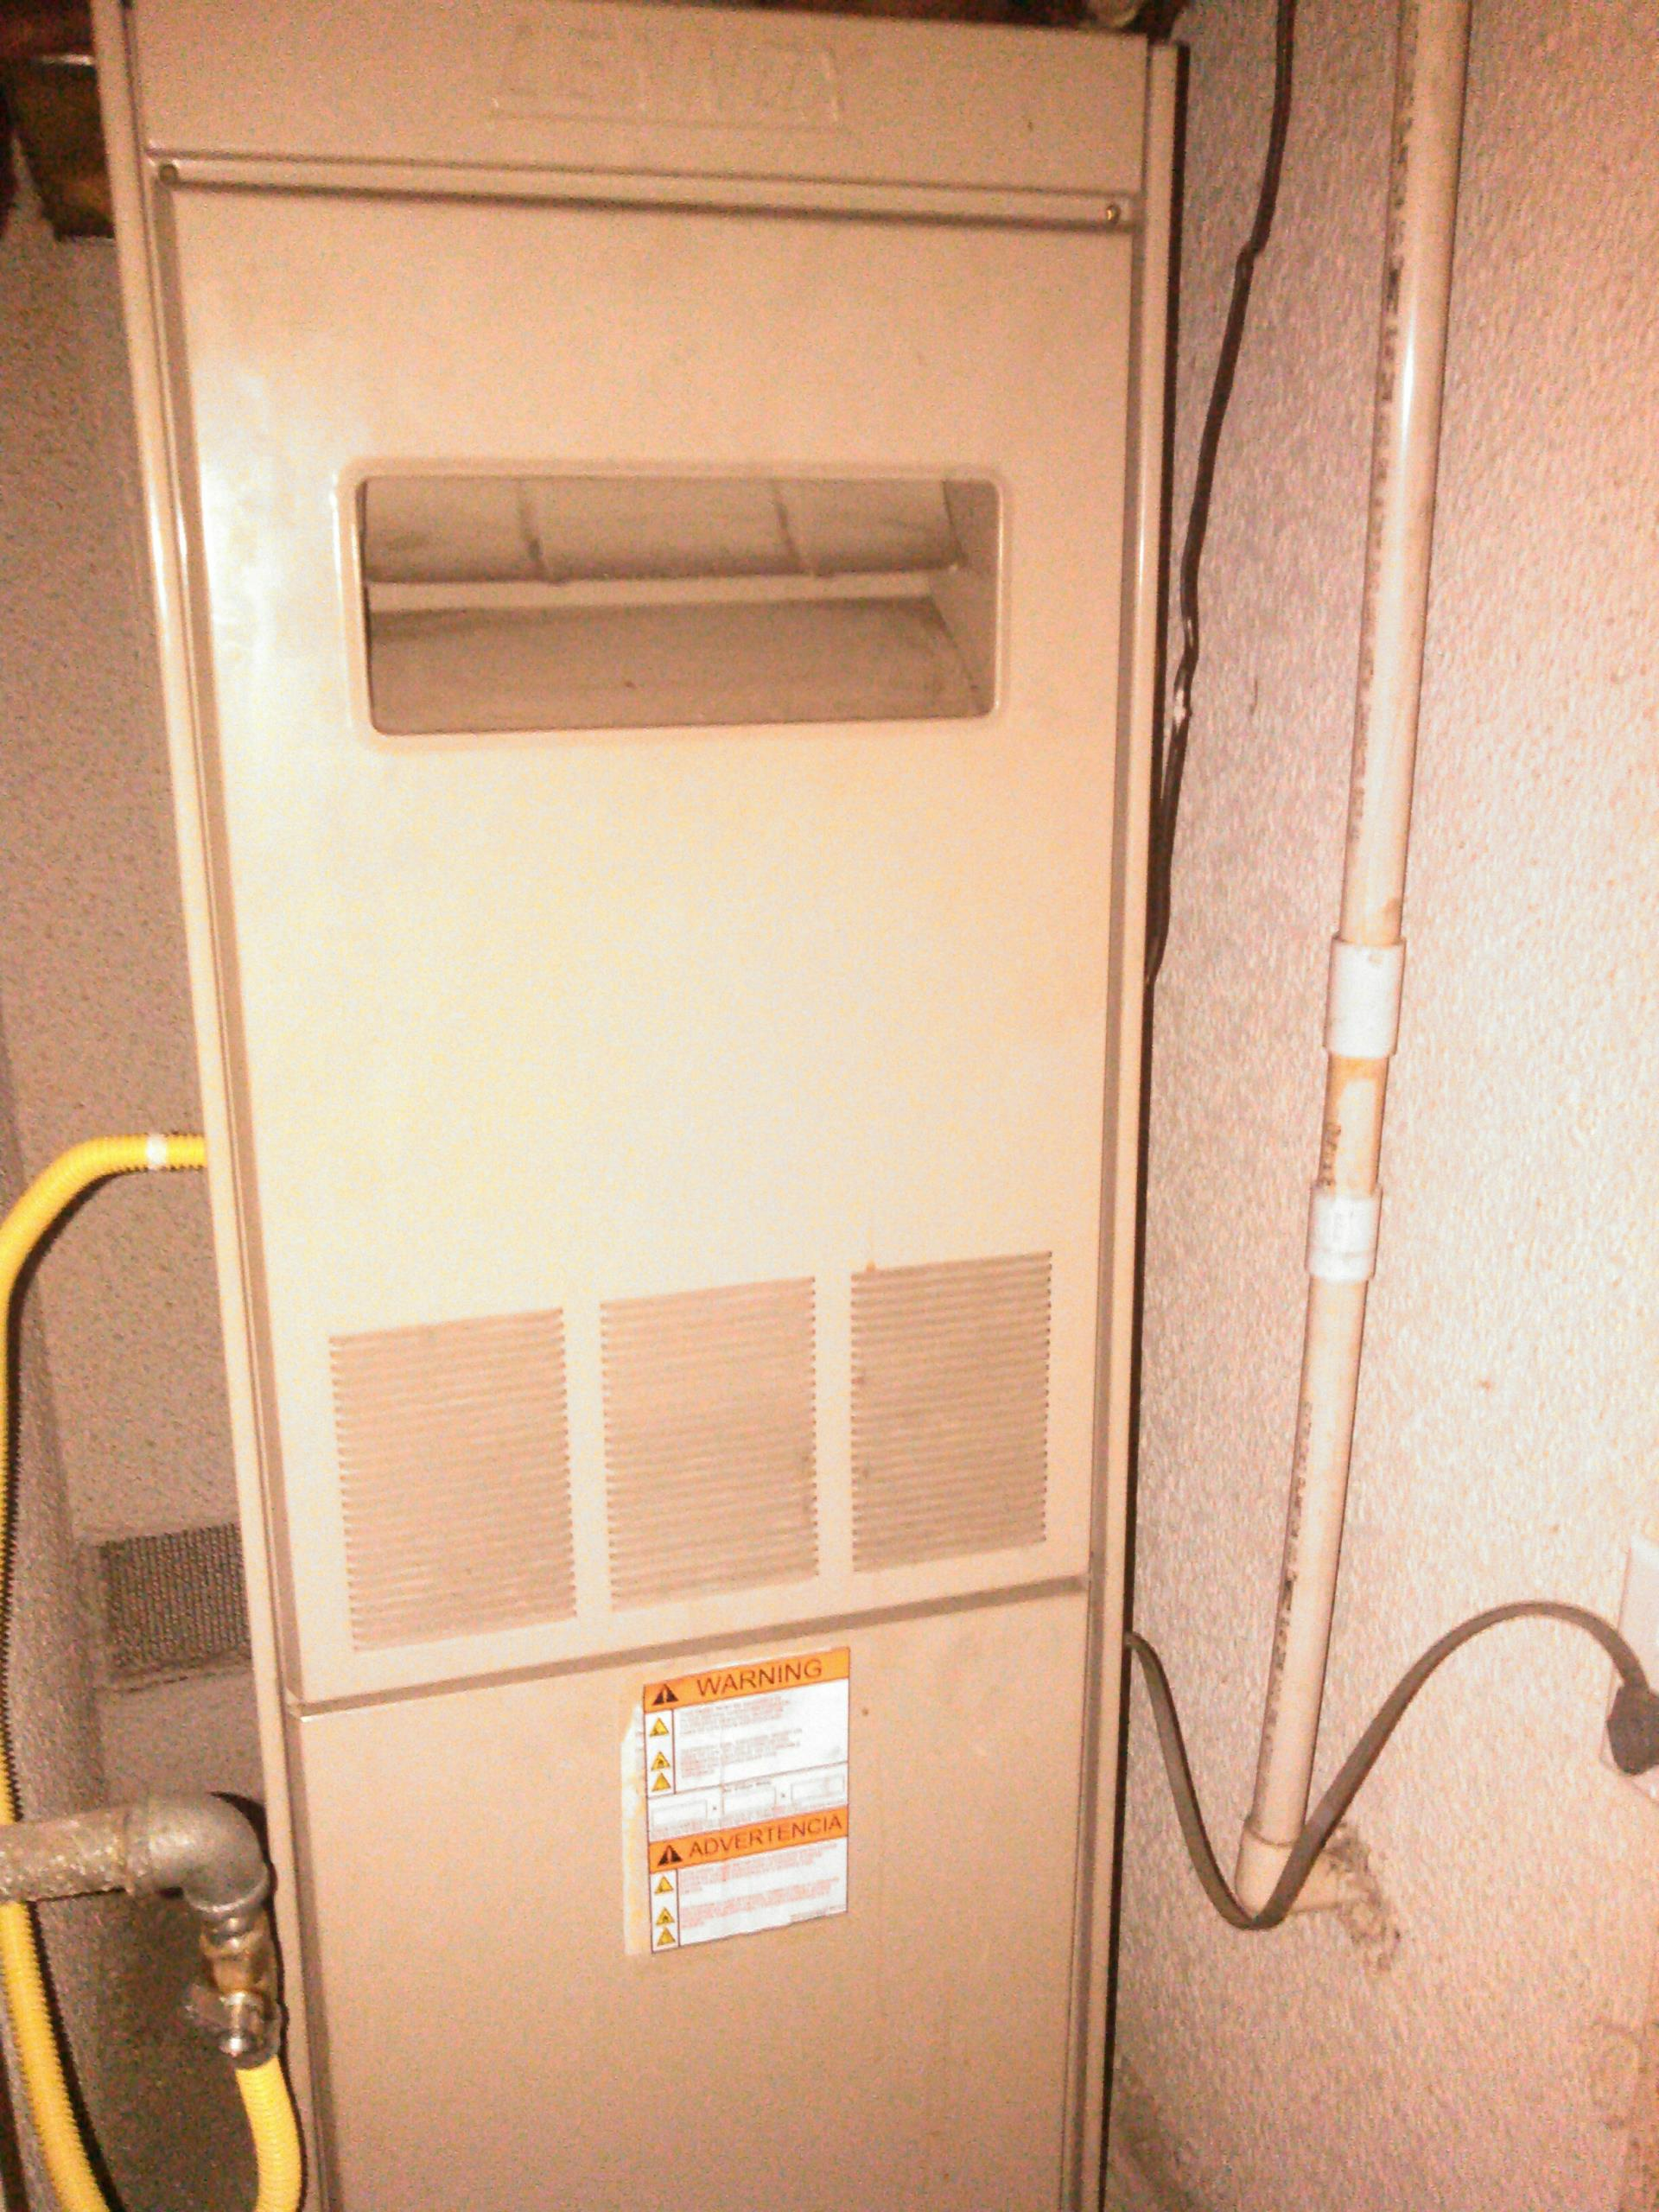 Temple City, CA - Repaired upflow furnance that had shorted out components due to power surge by Edison